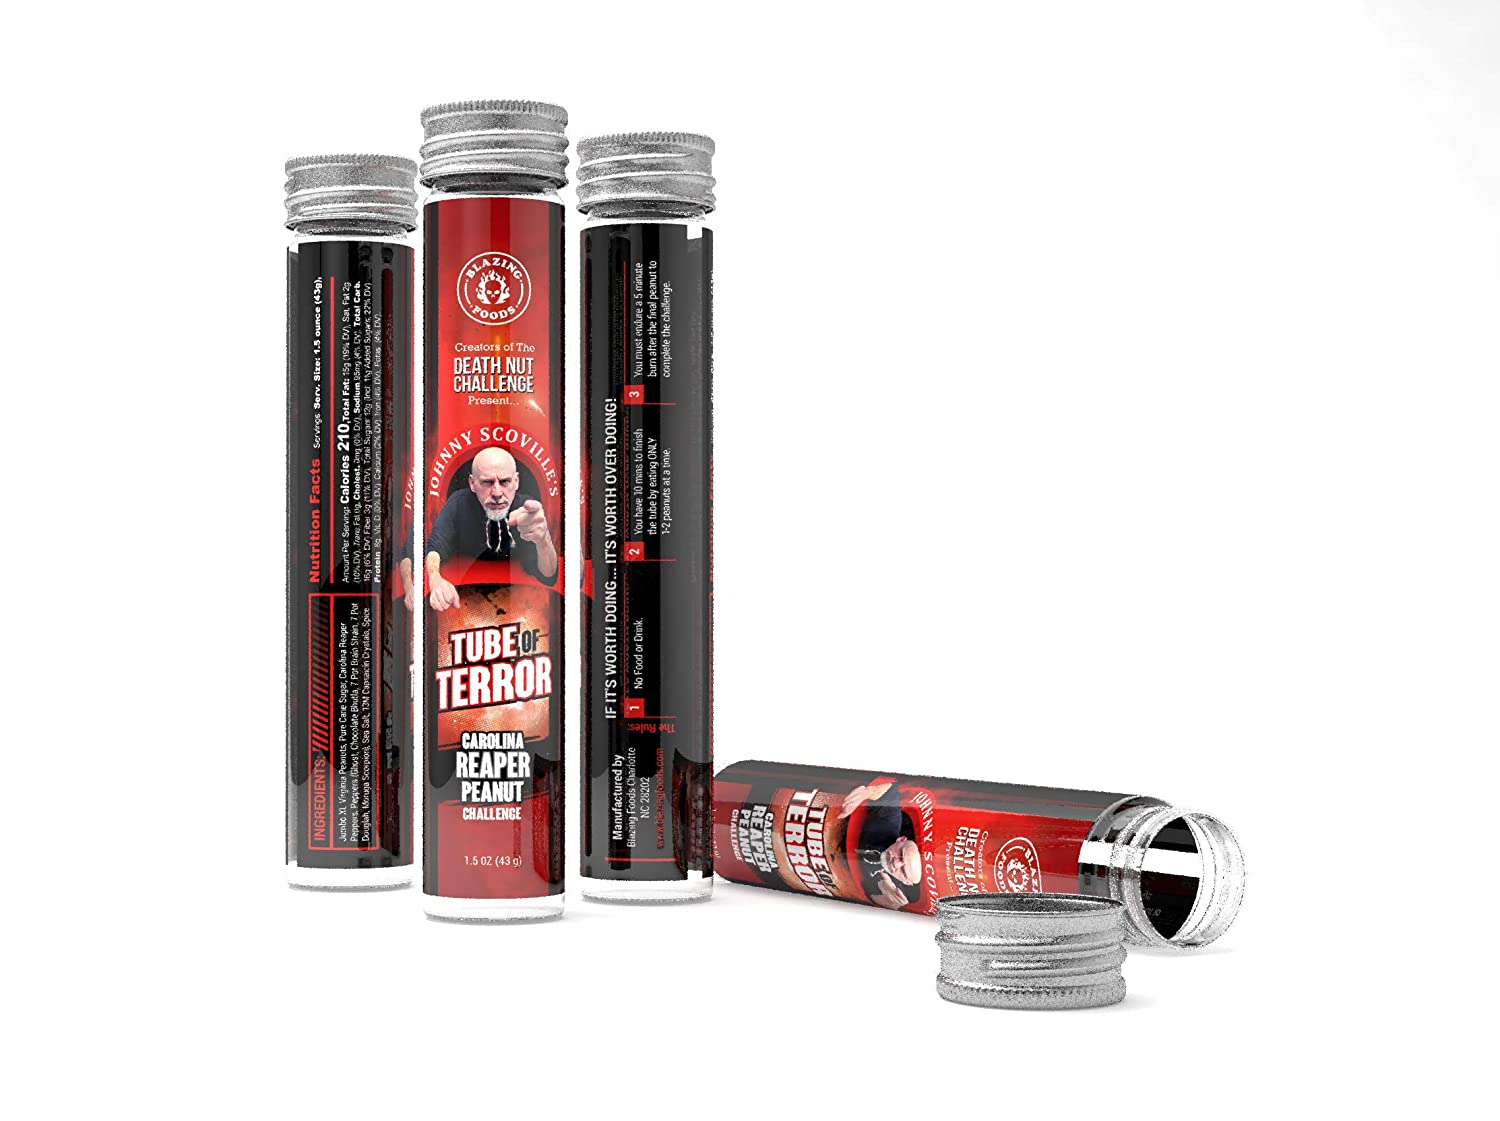 Tube of Terror Challenge - verified hottest Carolina Reaper, Ghost & Scorpion Pepper peanuts on planet earth